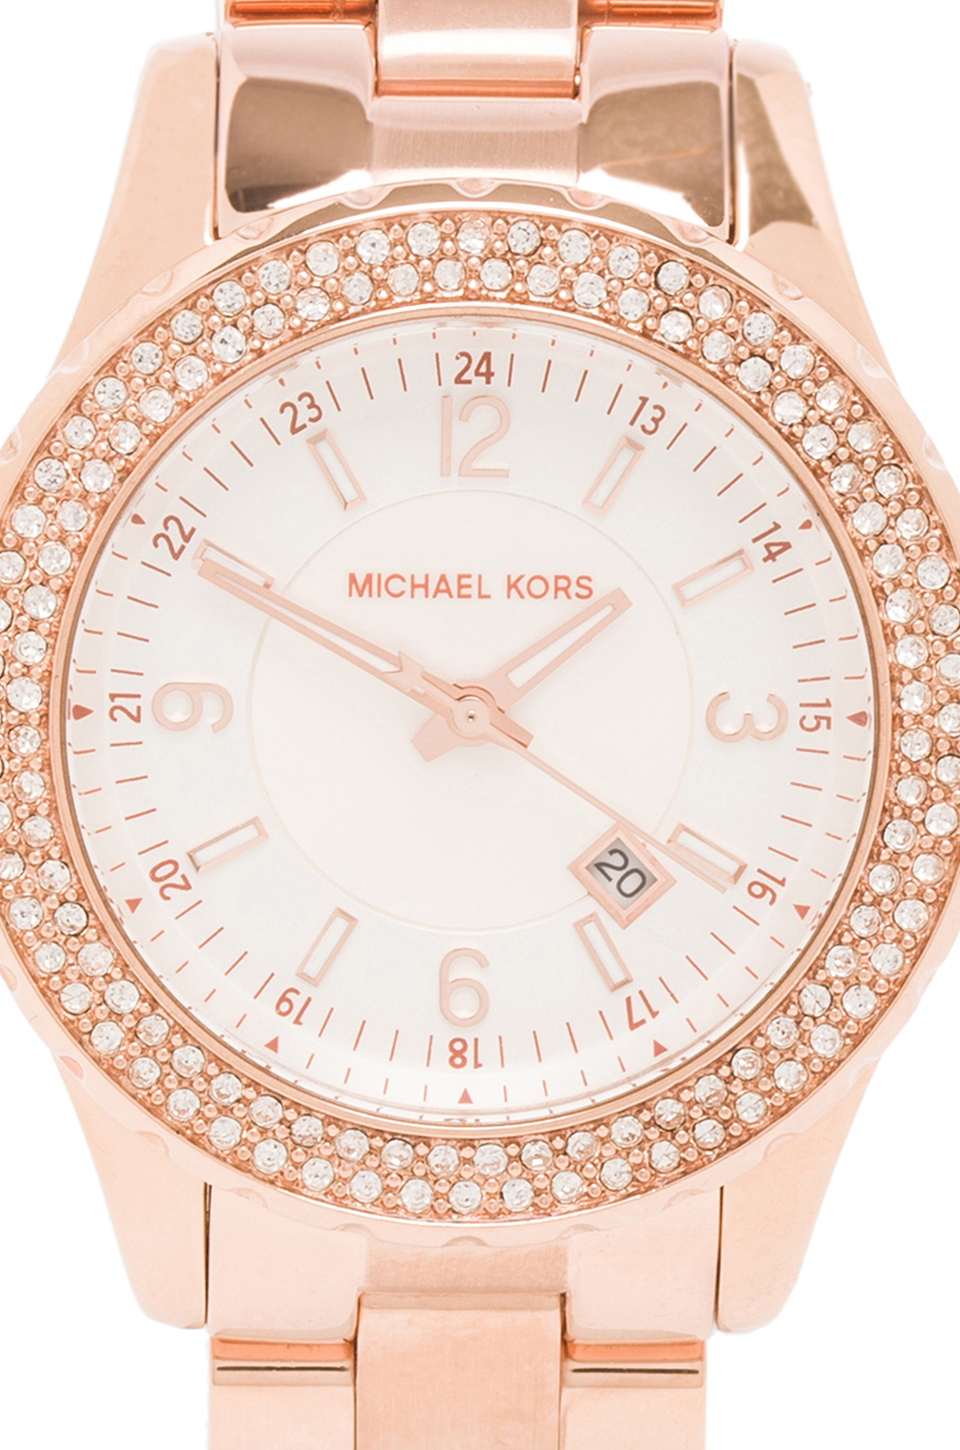 Michael Kors Madison Watch in Rose Gold